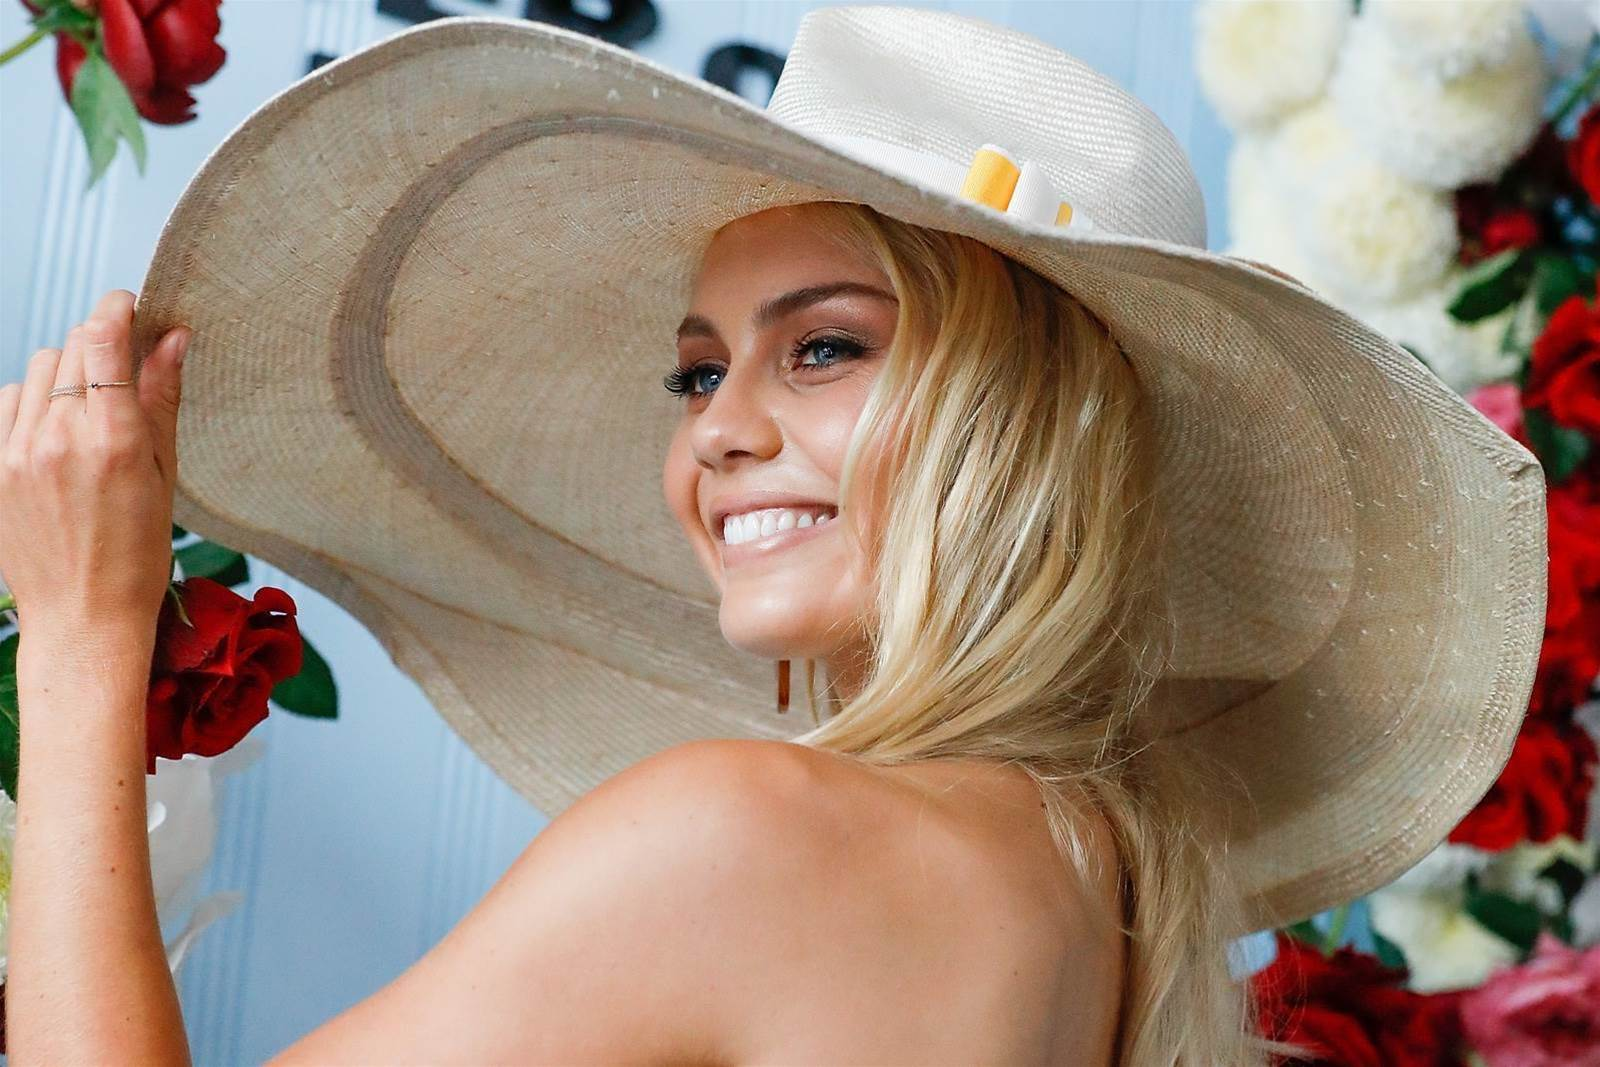 Melbourne Cup celebrity pic special